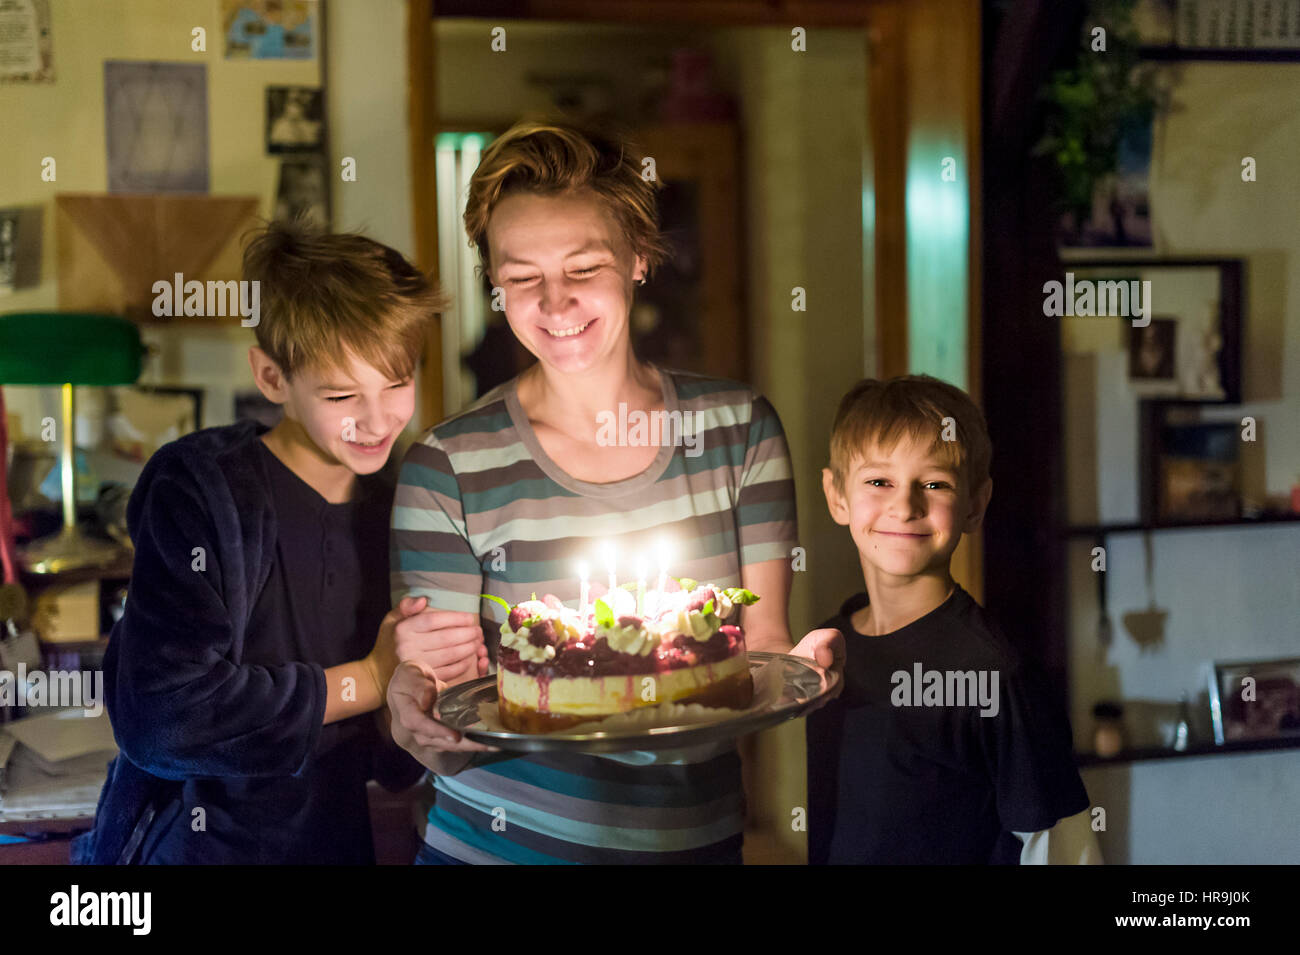 mother with two sons holding birthday cake - Stock Image